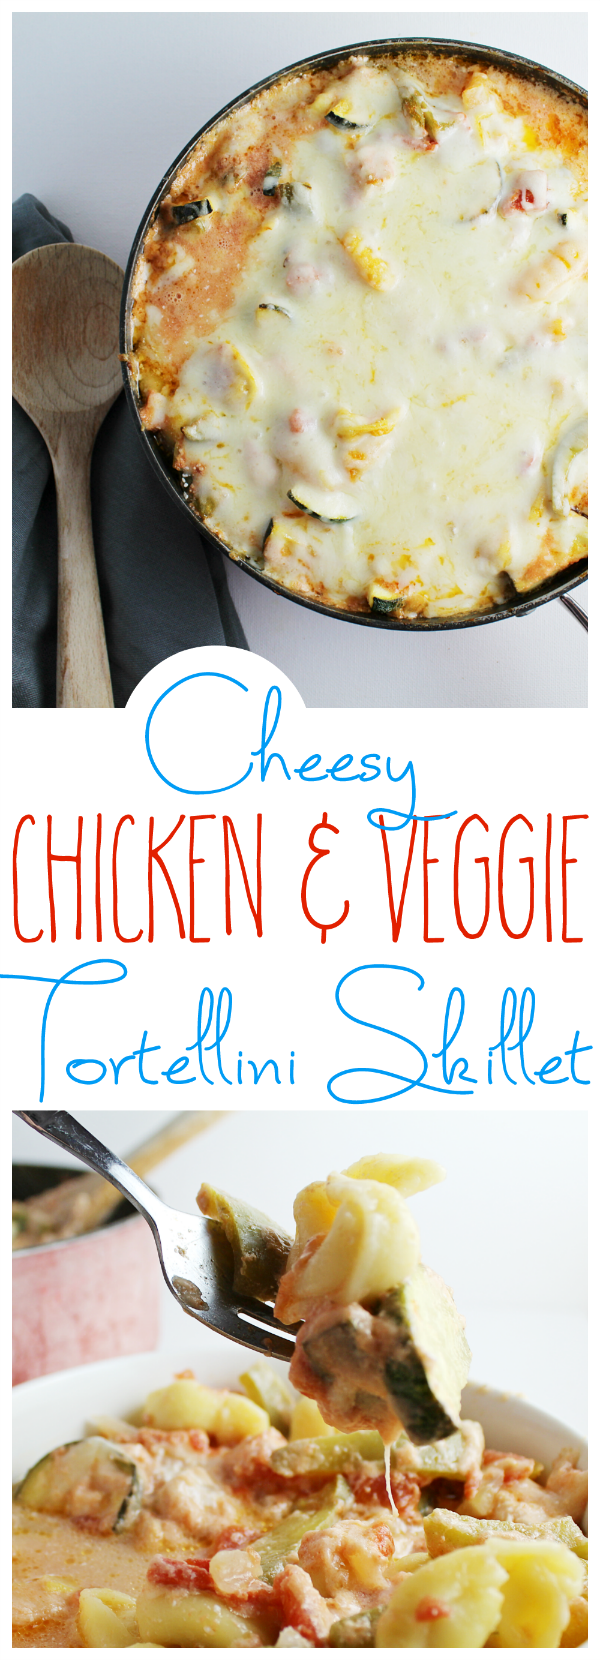 Cheesy Chicken & Veggie Tortellini Skillet is perfect for a tasty comfort food without all the fuss!